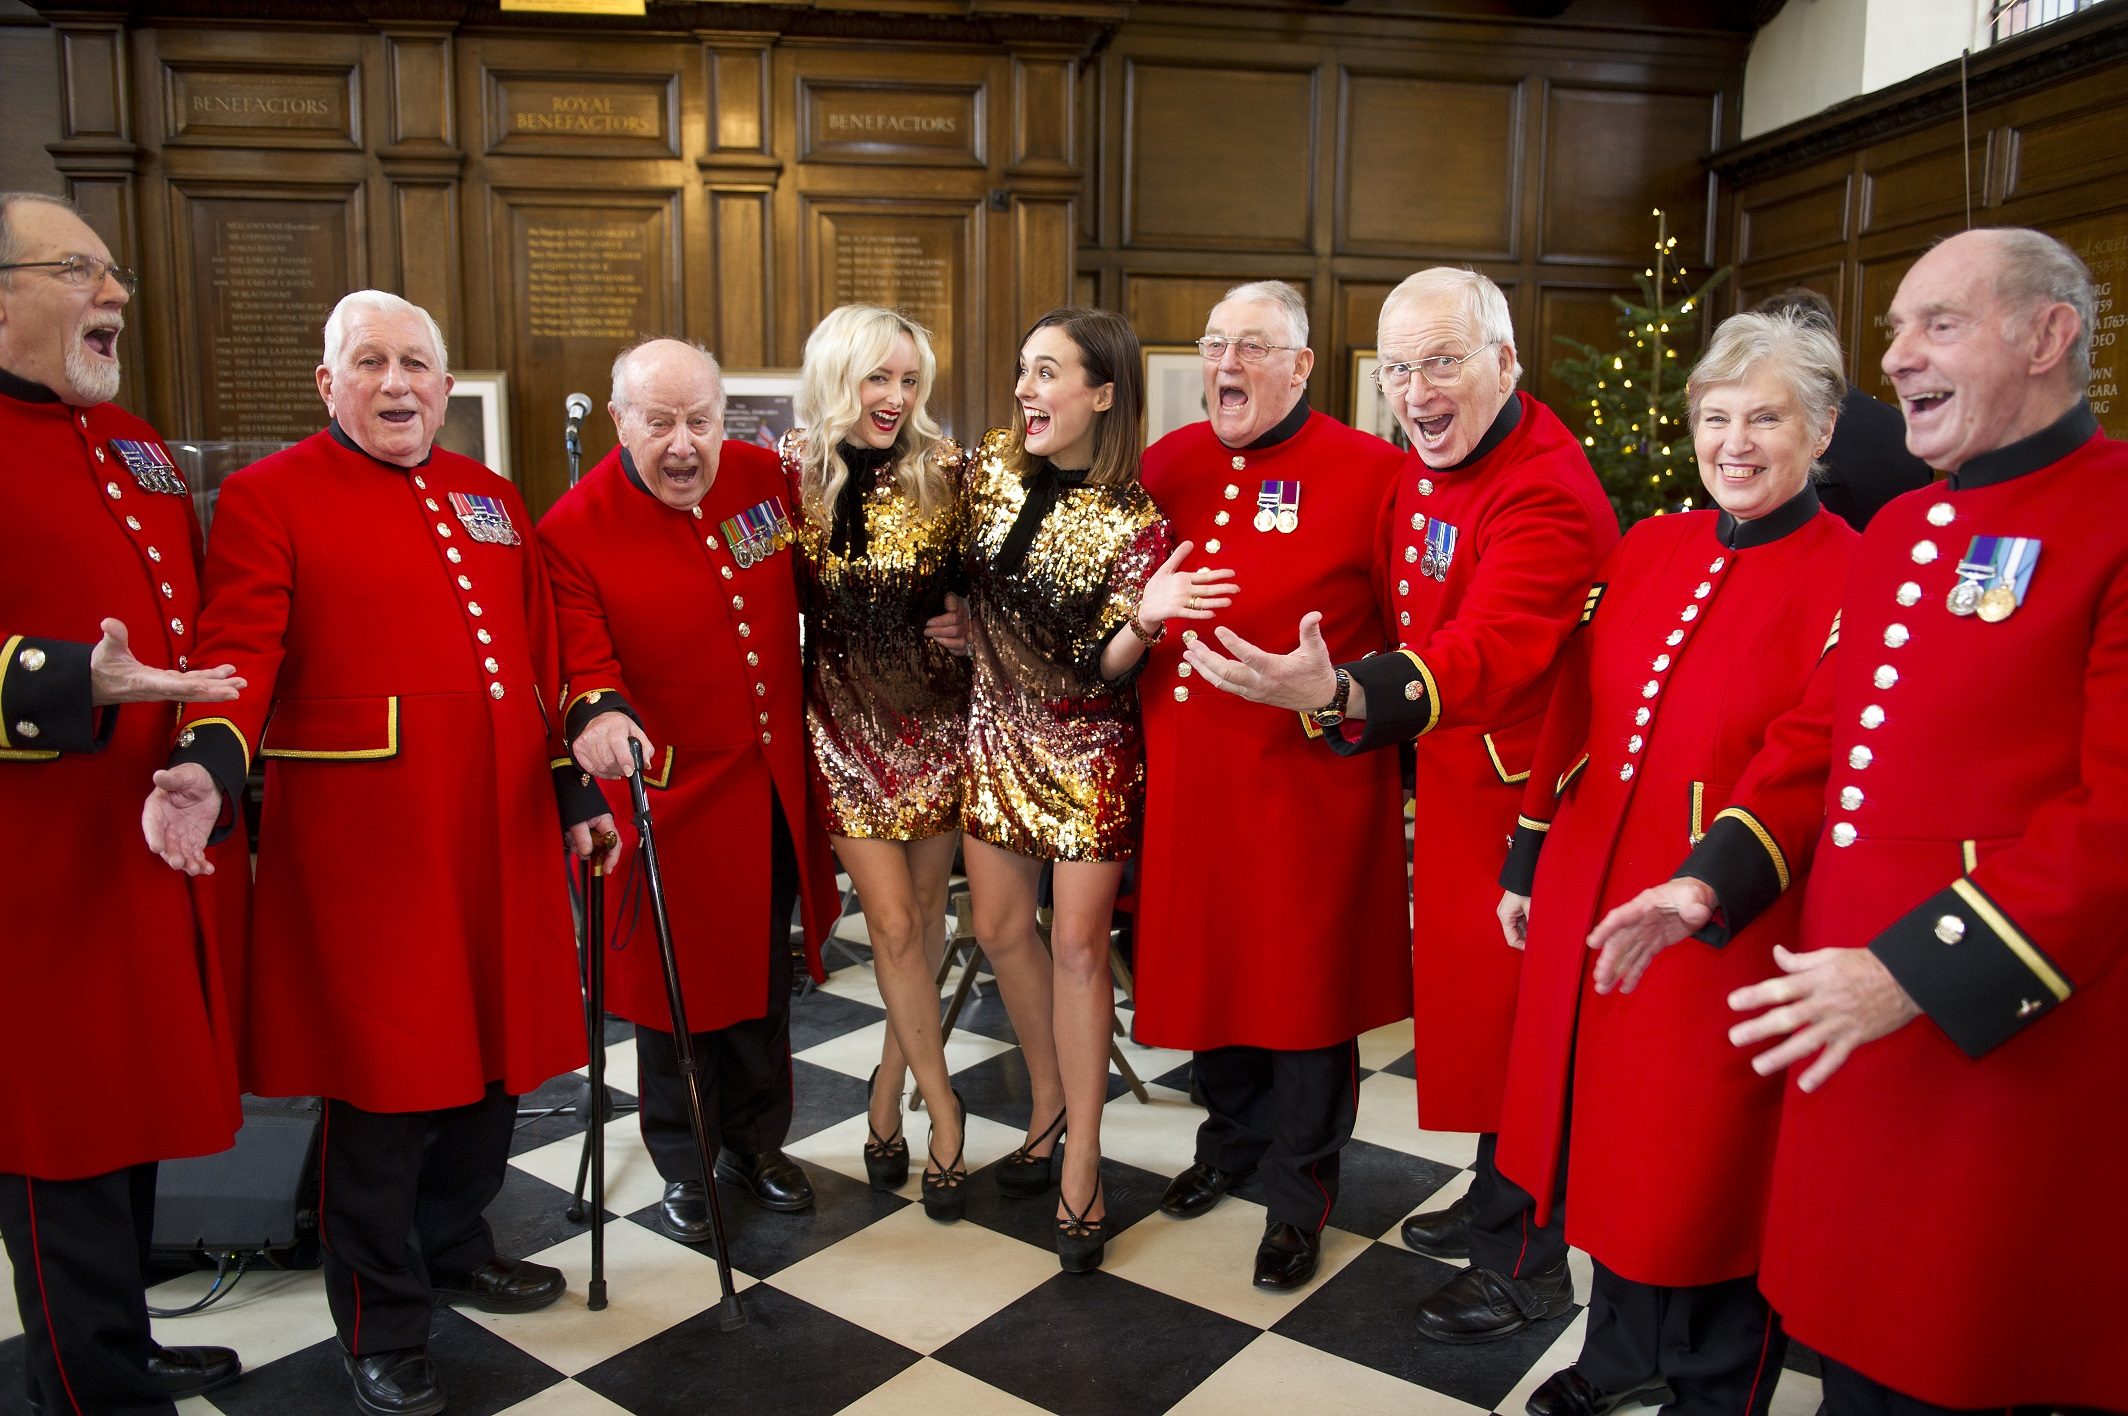 """CHELSEA PENSIONERS SAY """"CHEESE"""" TO HERALD THE START OF THE FESTIVE SEASON"""